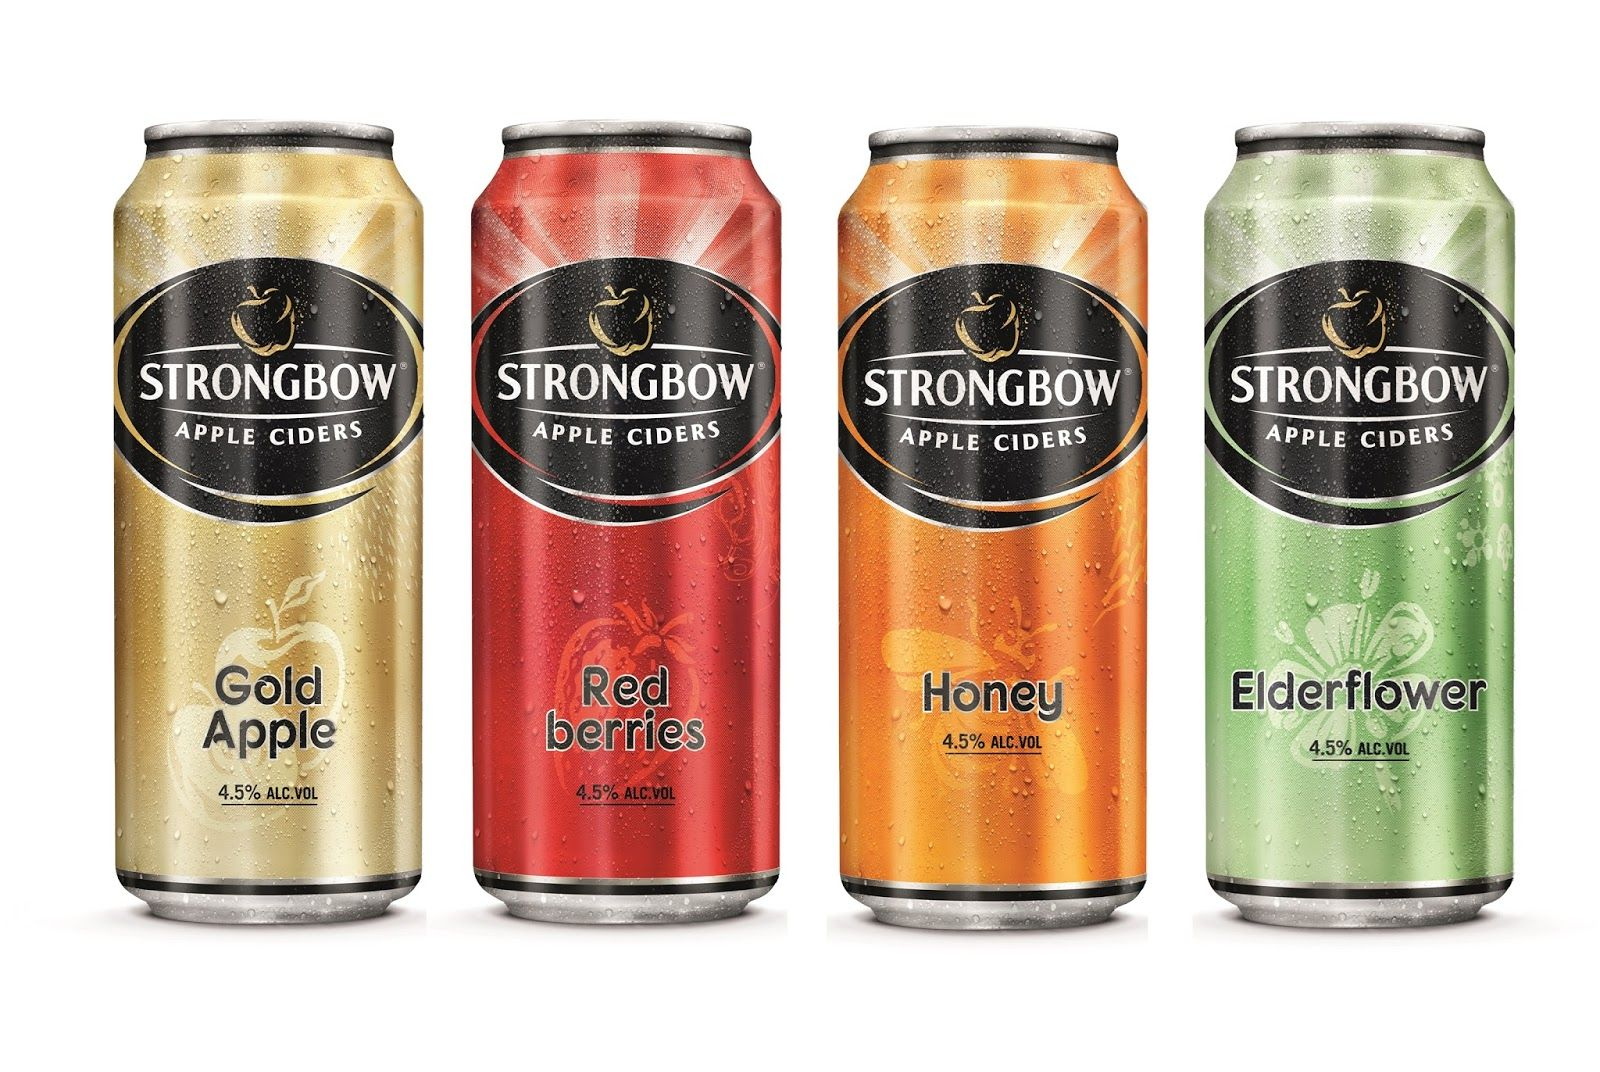 Strongbow Apple Ciders Cider Apple Cider Beer Packaging